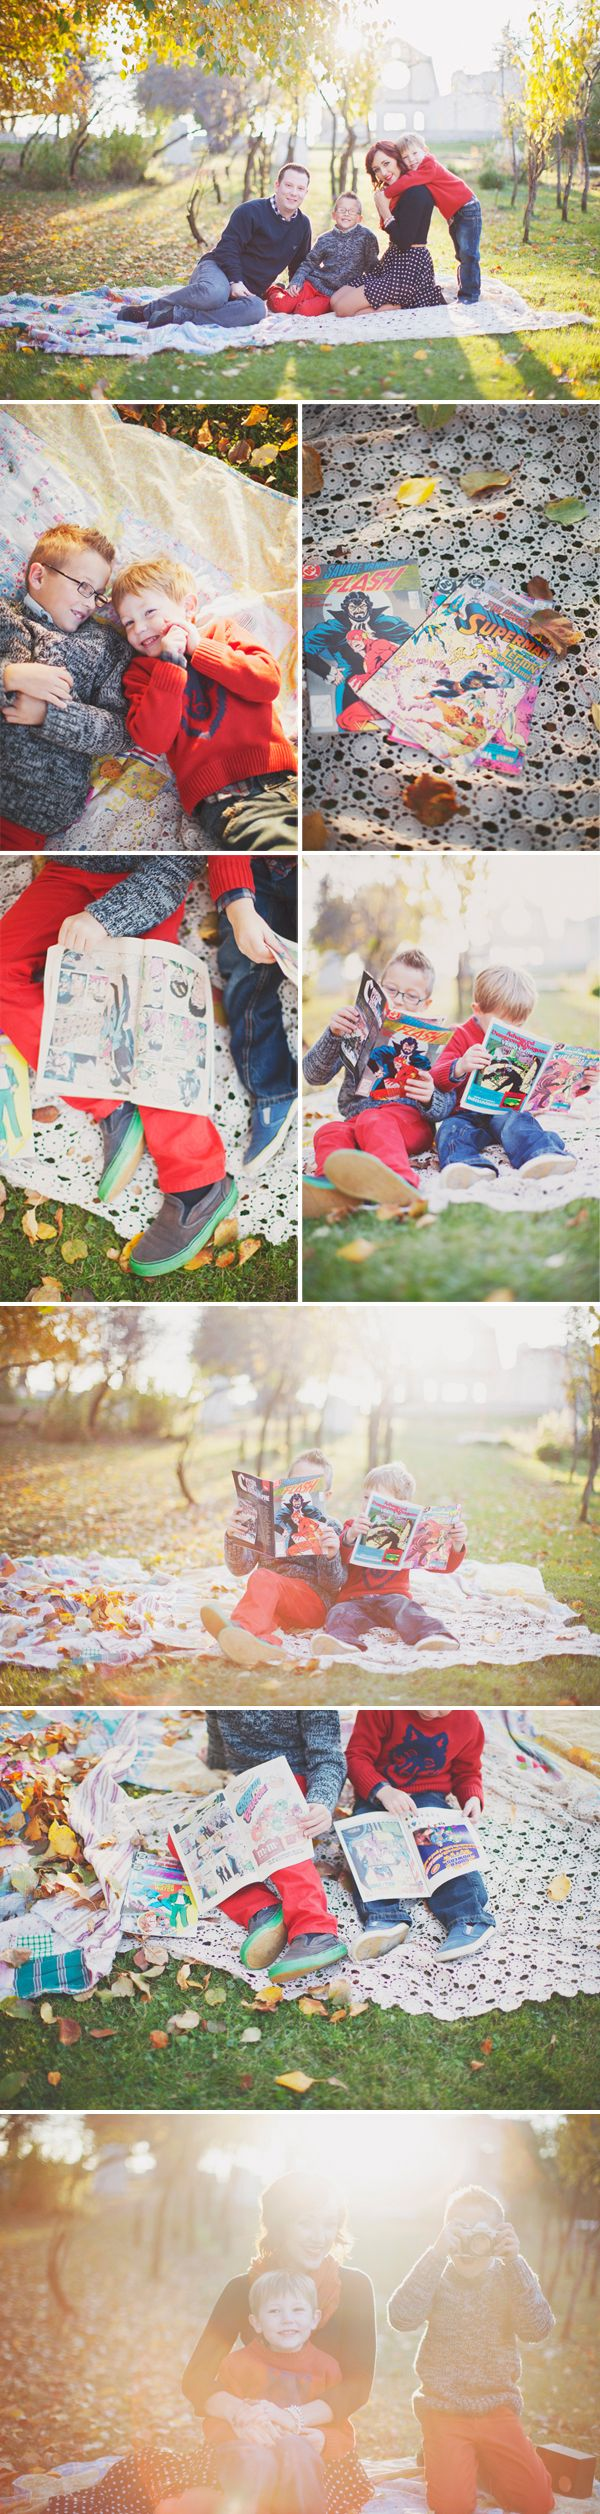 Simply Rosie Photography >> Beautiful Family Photo Sessions & Inspiration